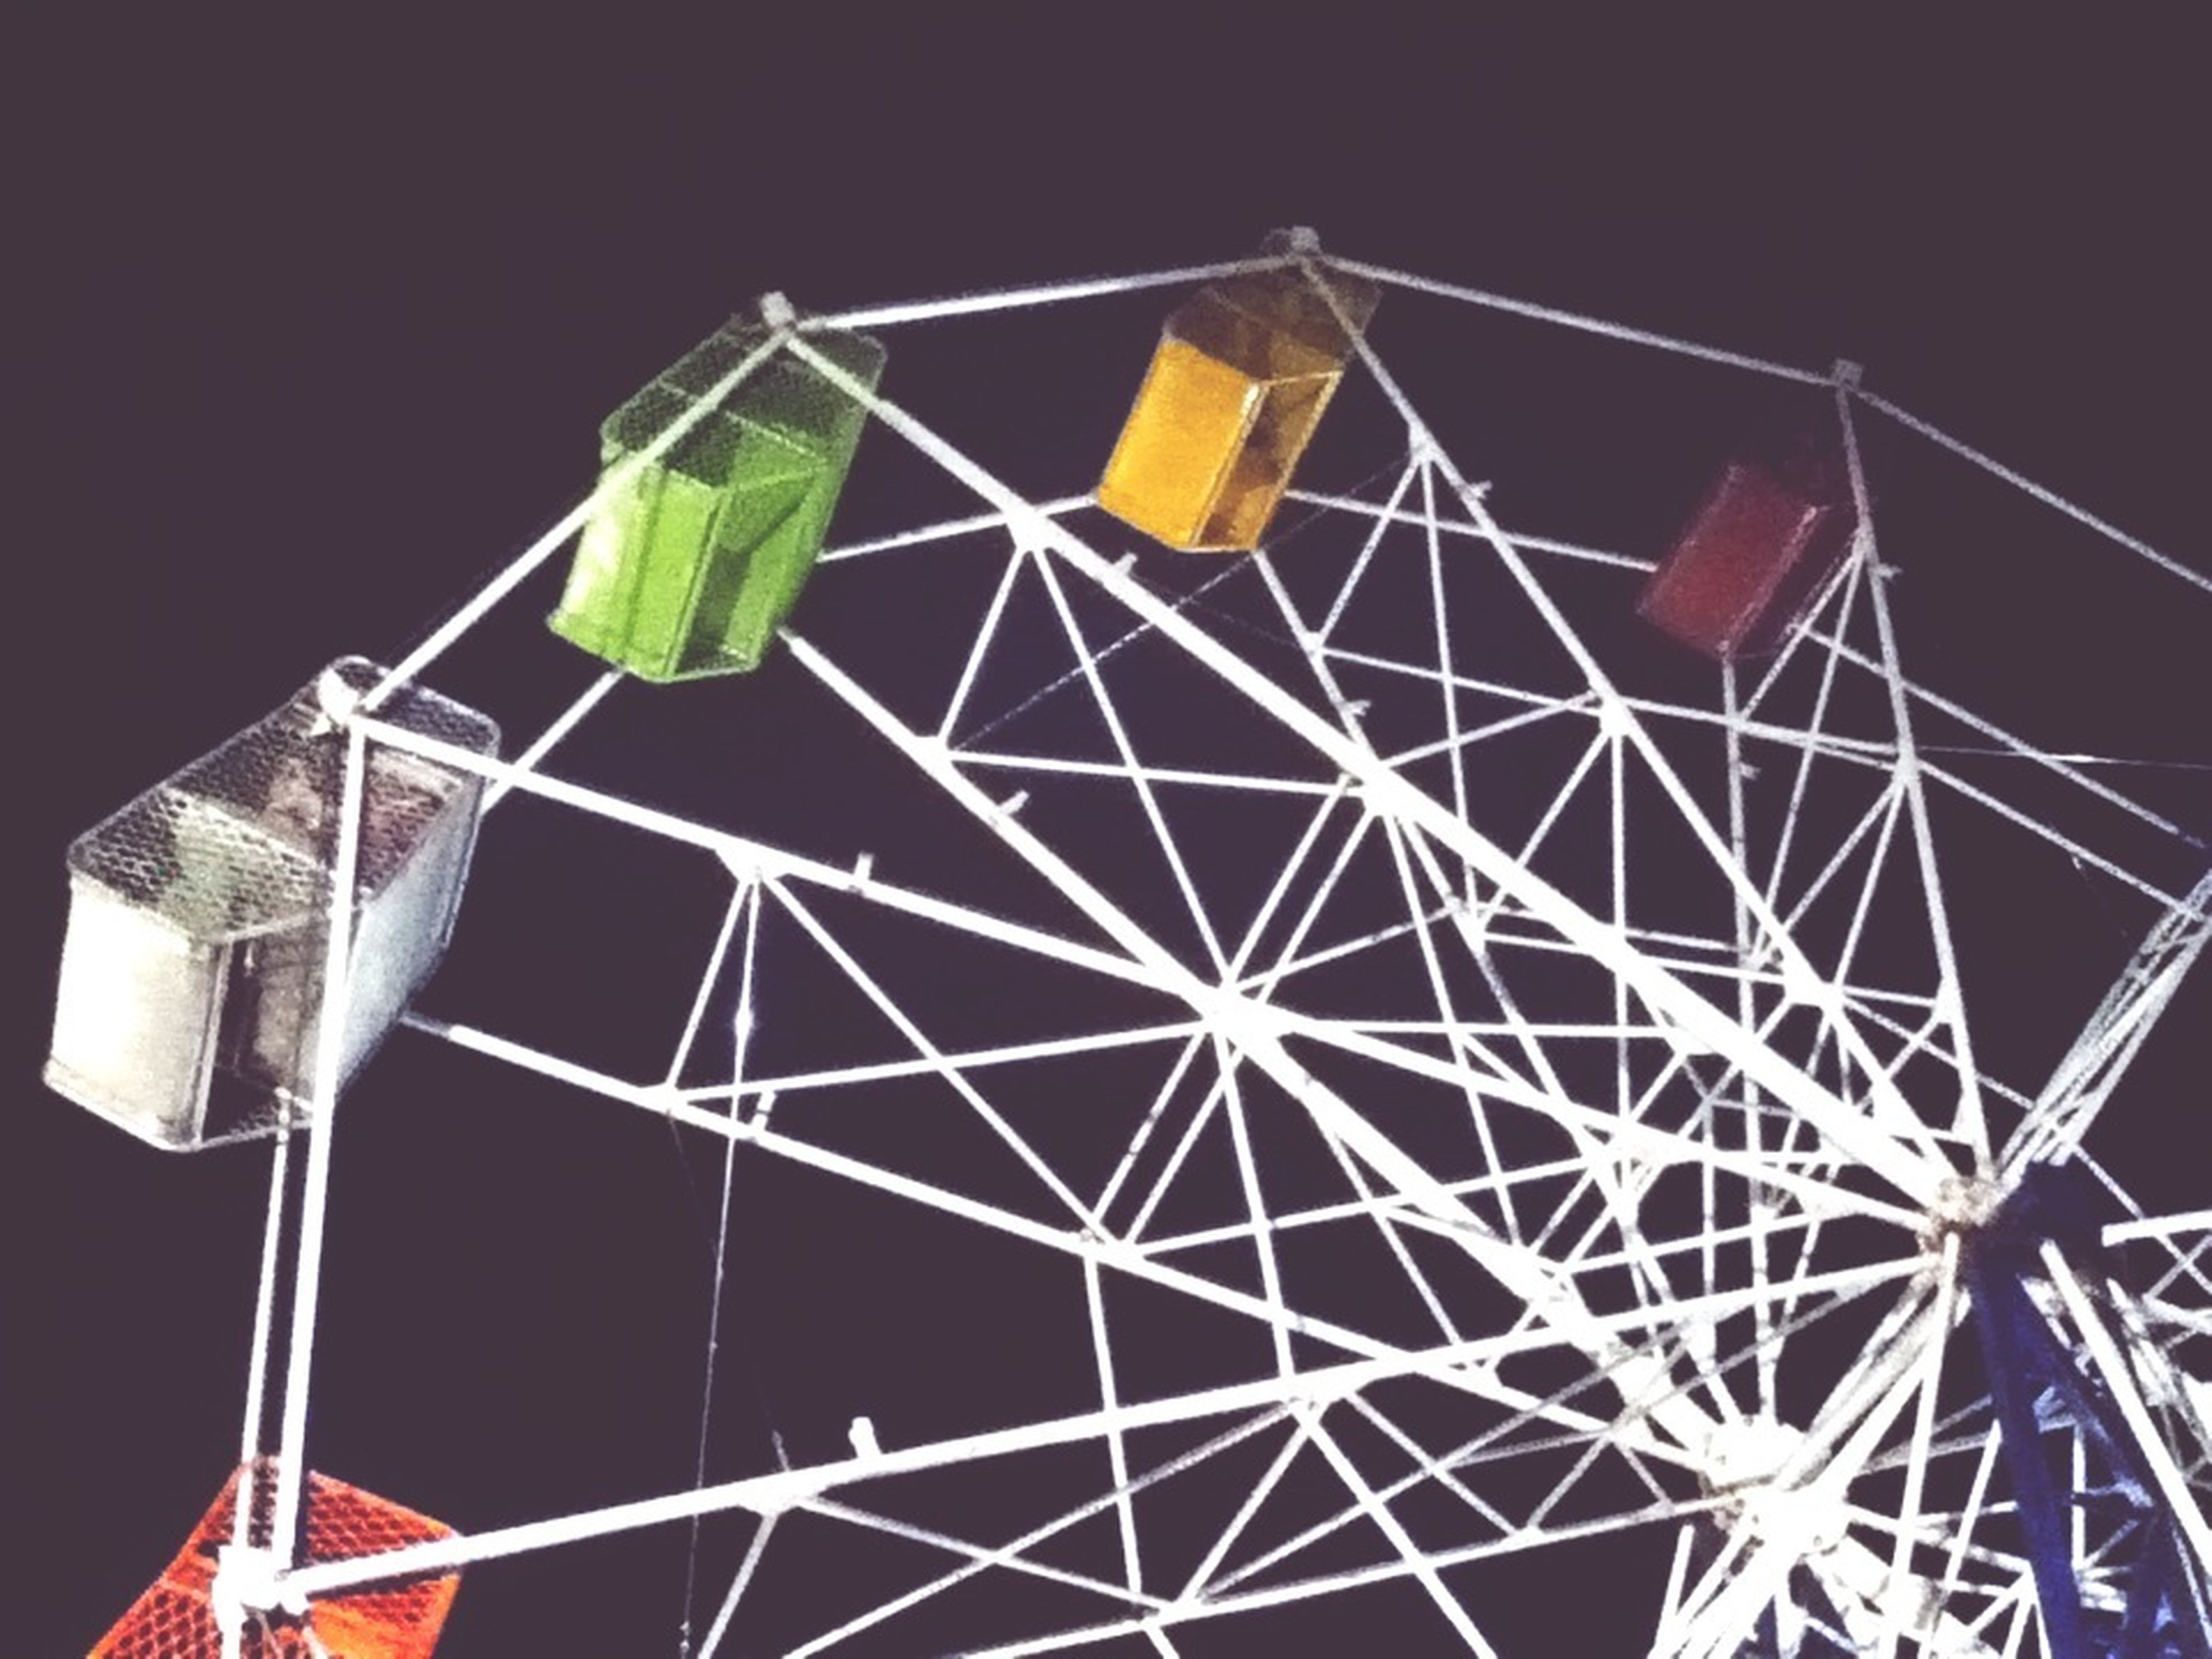 low angle view, metal, pattern, arts culture and entertainment, no people, night, amusement park, amusement park ride, multi colored, outdoors, yellow, sky, close-up, ferris wheel, clear sky, built structure, metallic, green color, illuminated